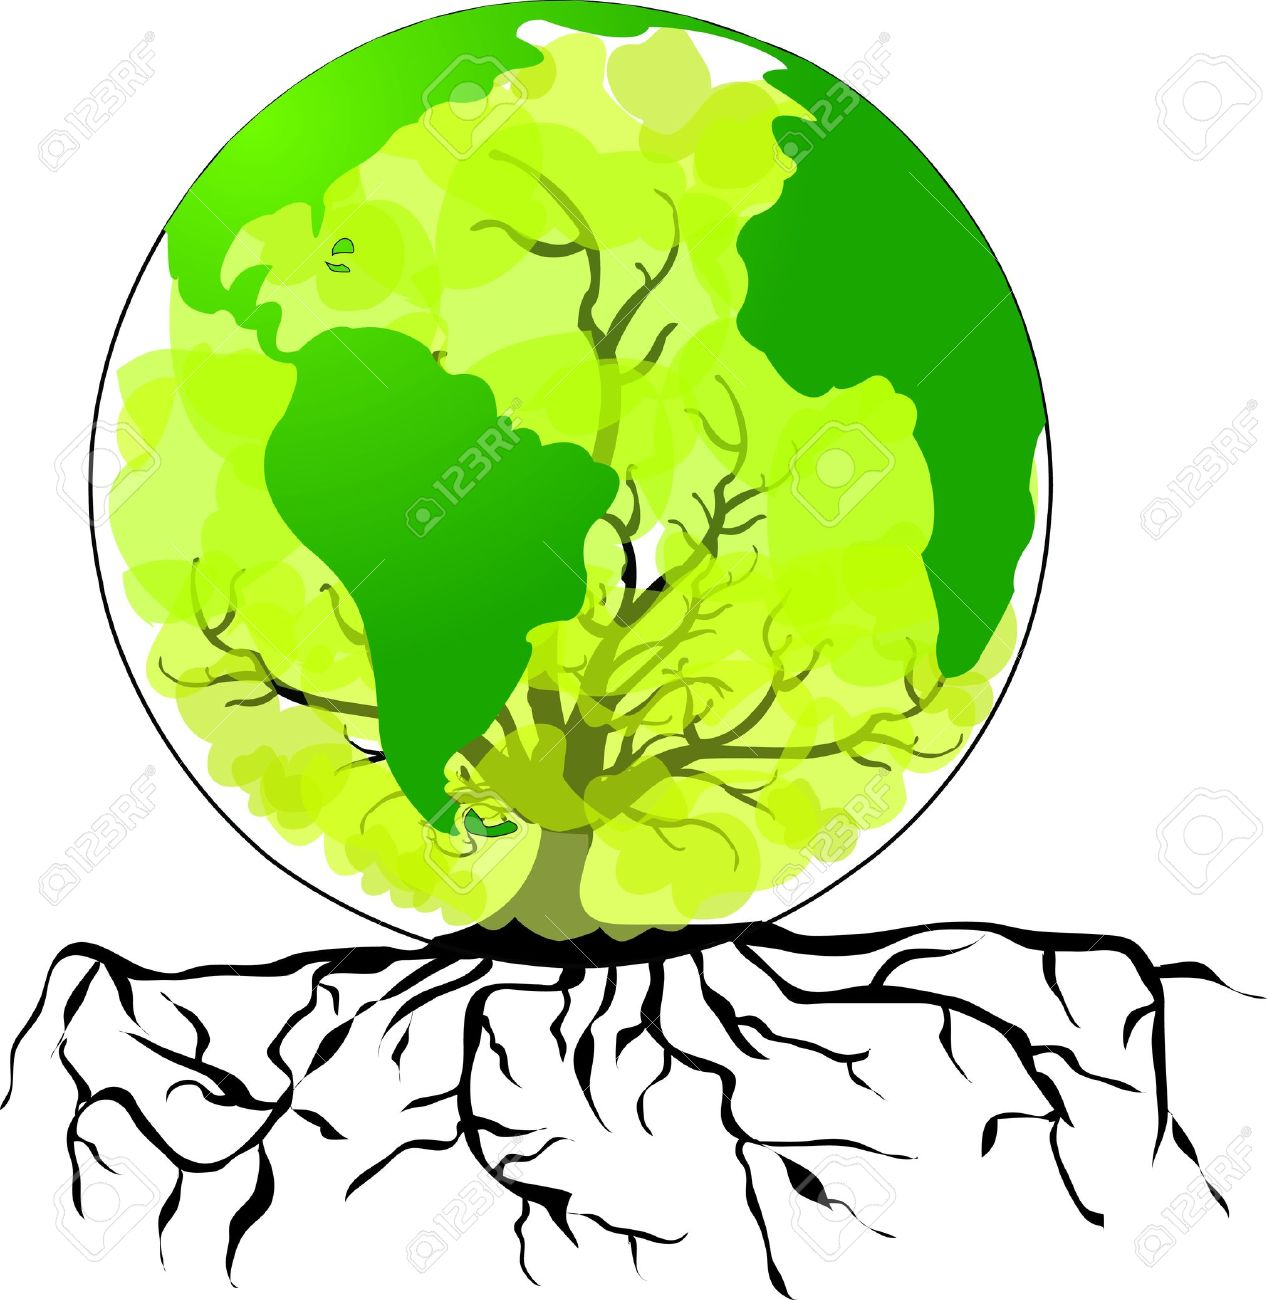 1267x1300 Environmental Concept Tree Forming The World Globe In Its Branches